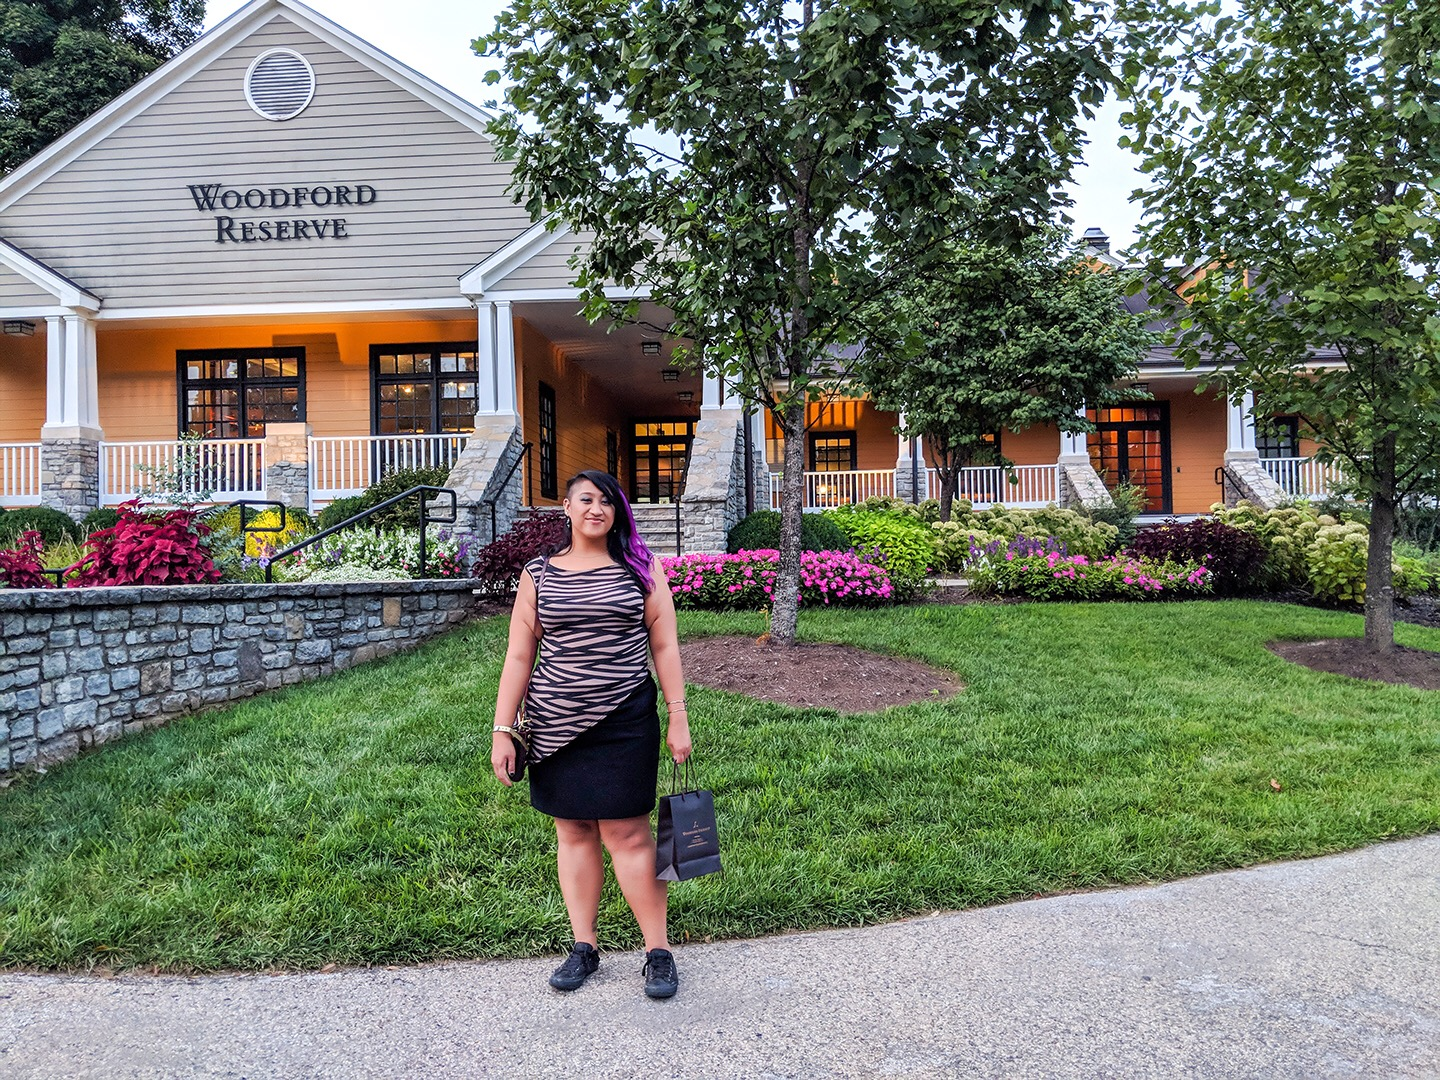 The Woodford Reserve distillery had me all 😍.  Wearing a  Tessa Louise  top and thrifted skirt.